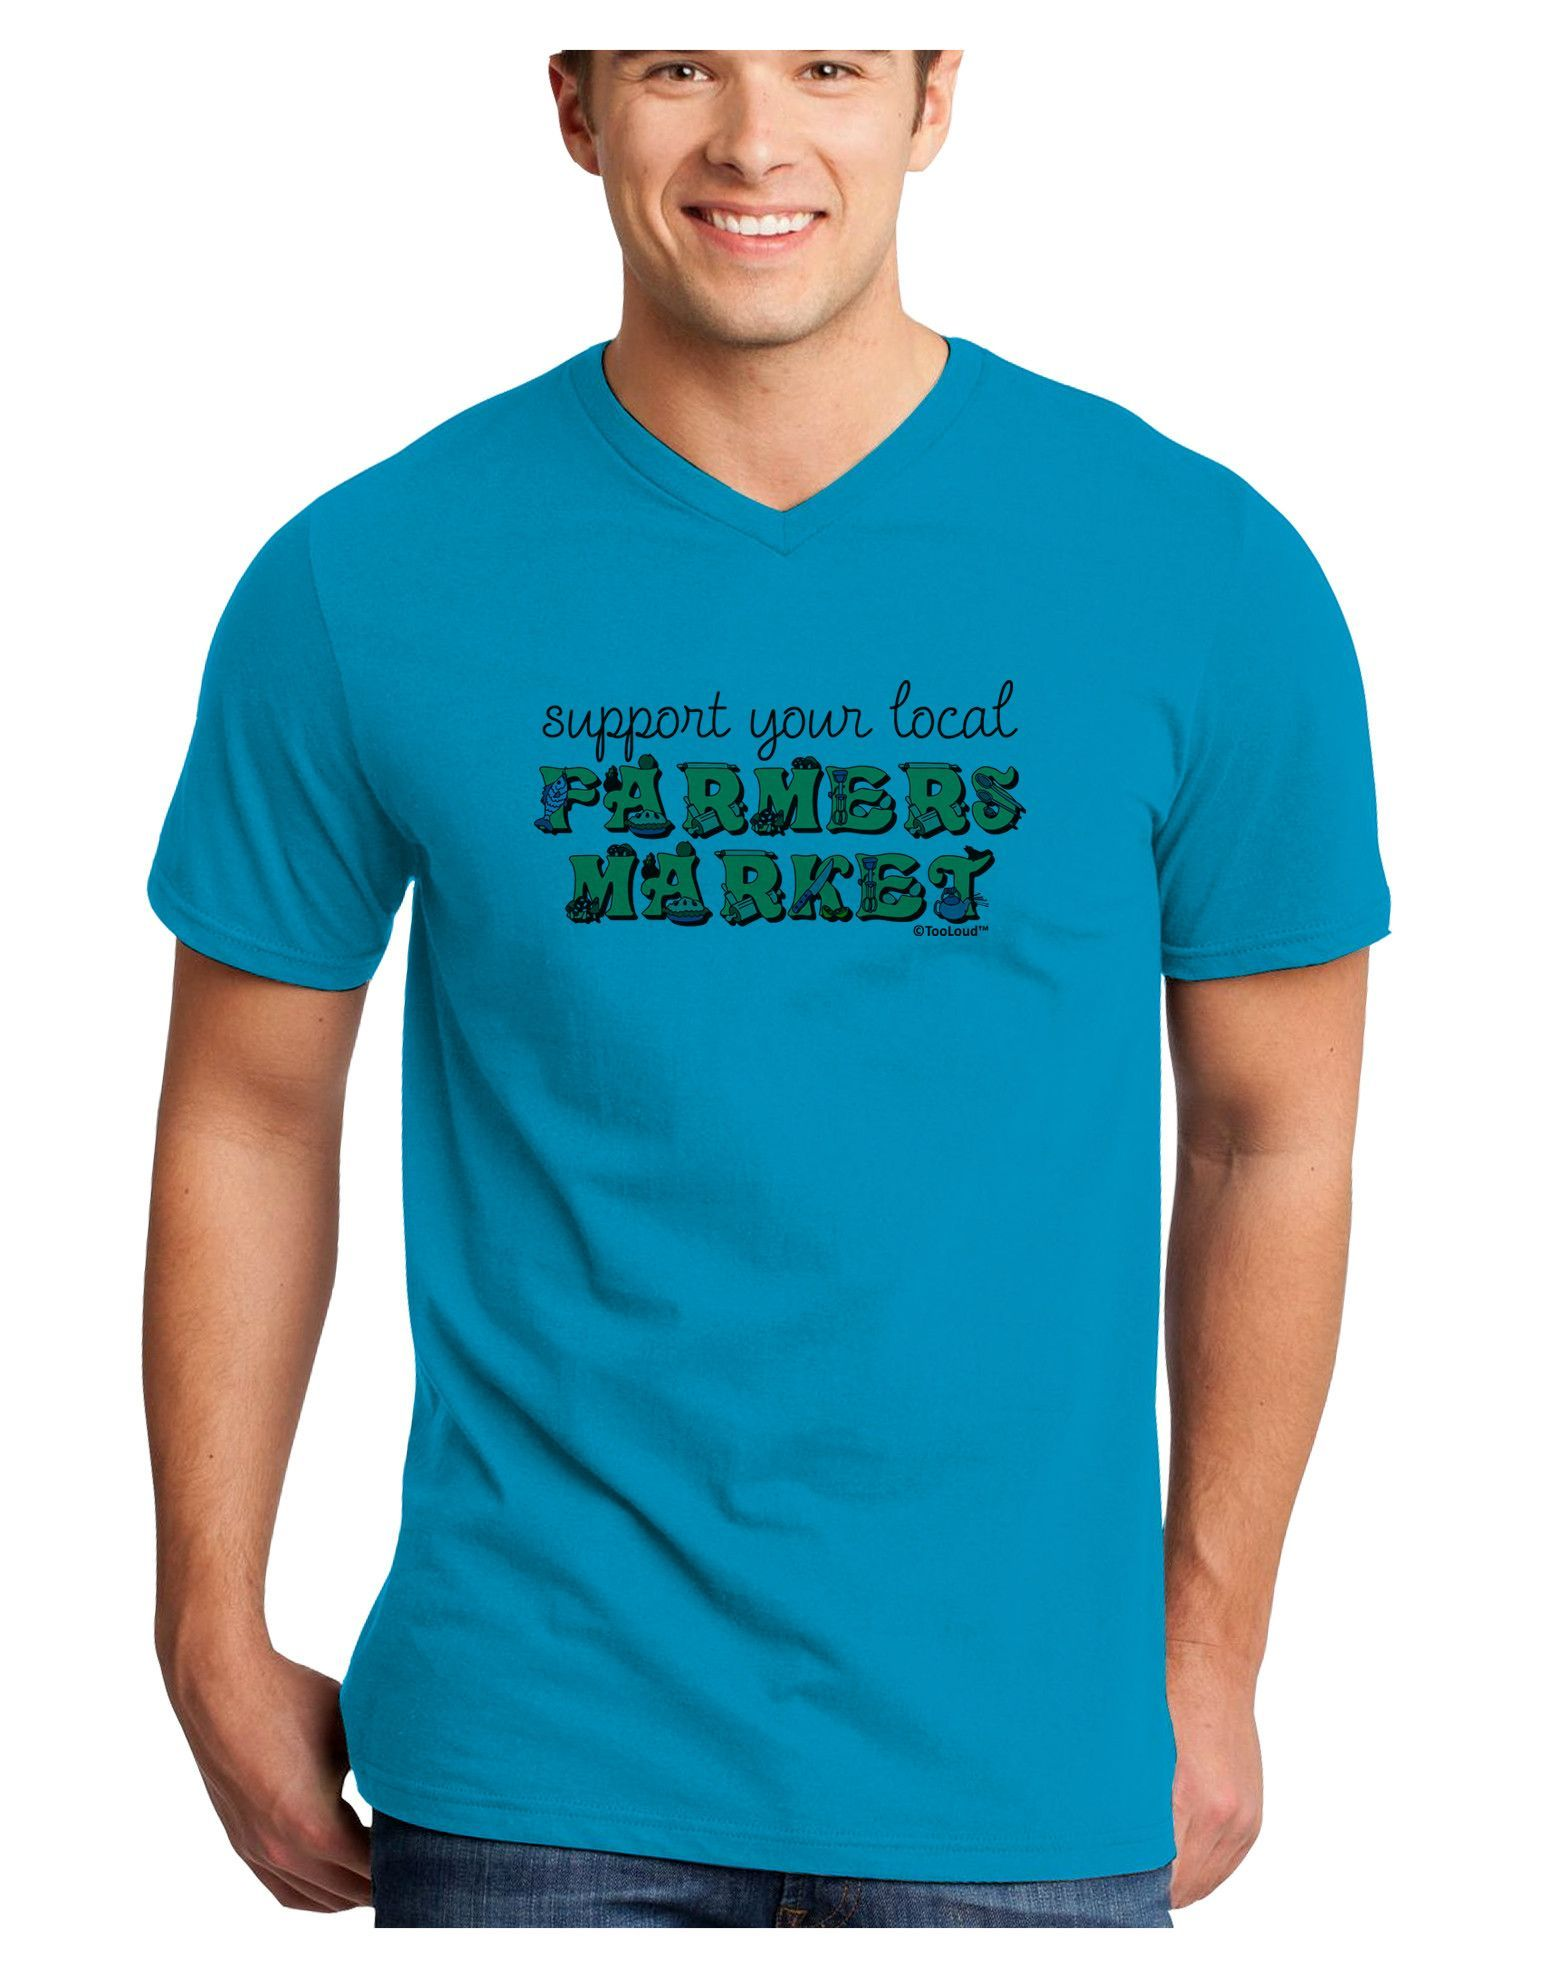 TooLoud Support Your Local Farmers Market - Color Adult V-Neck T-shirt